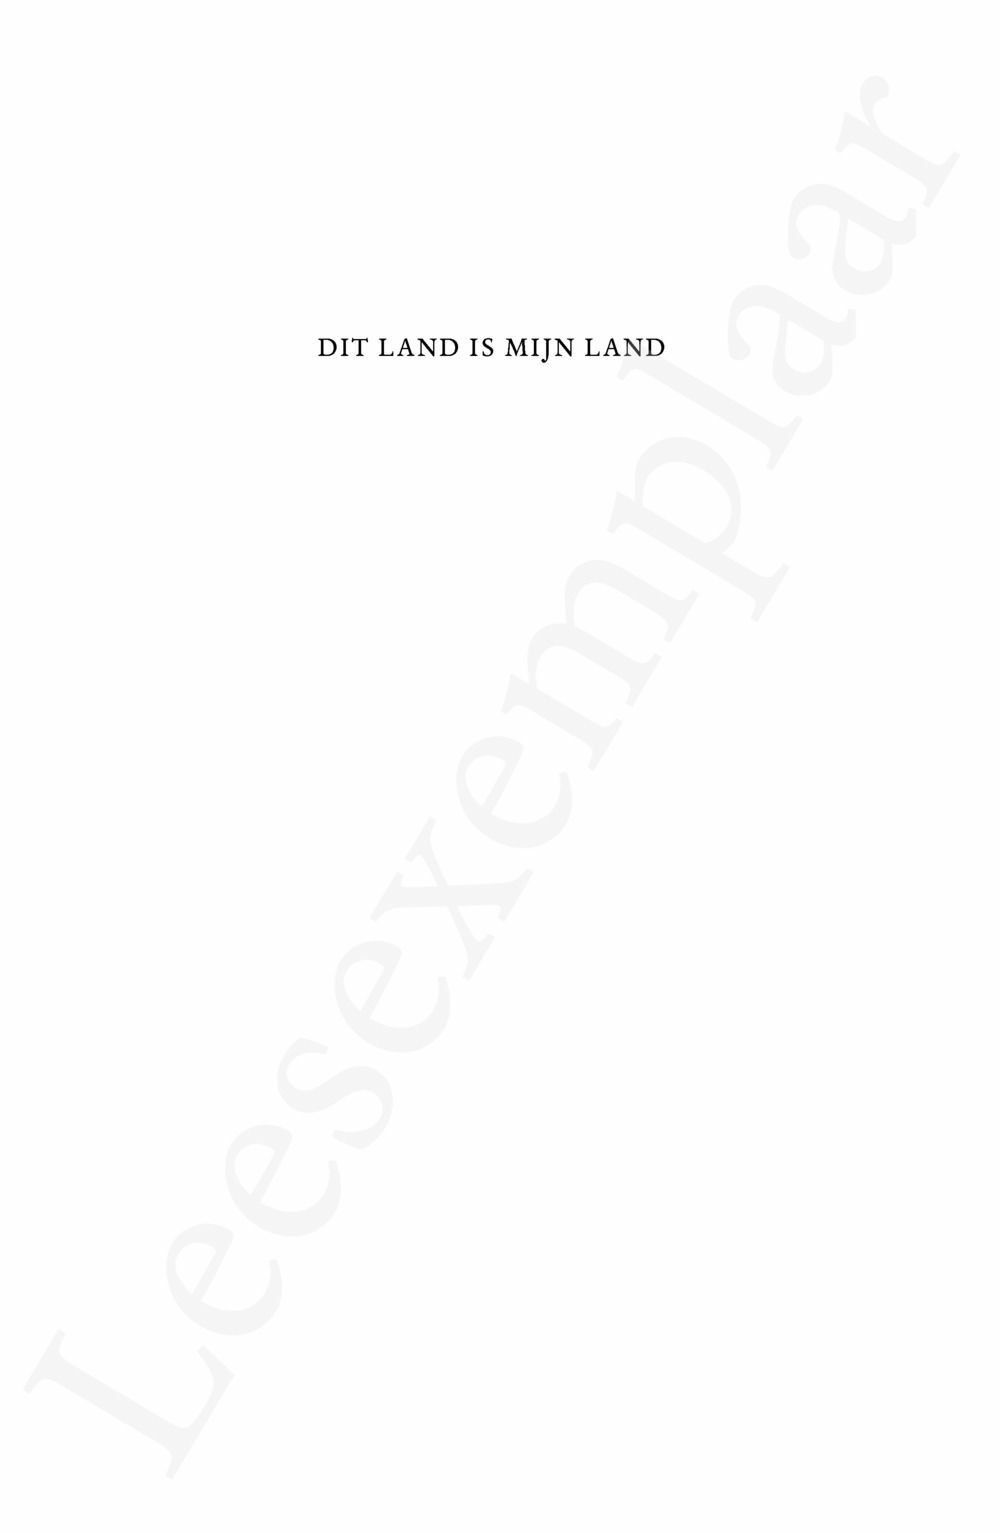 Preview: Dit land is mijn land